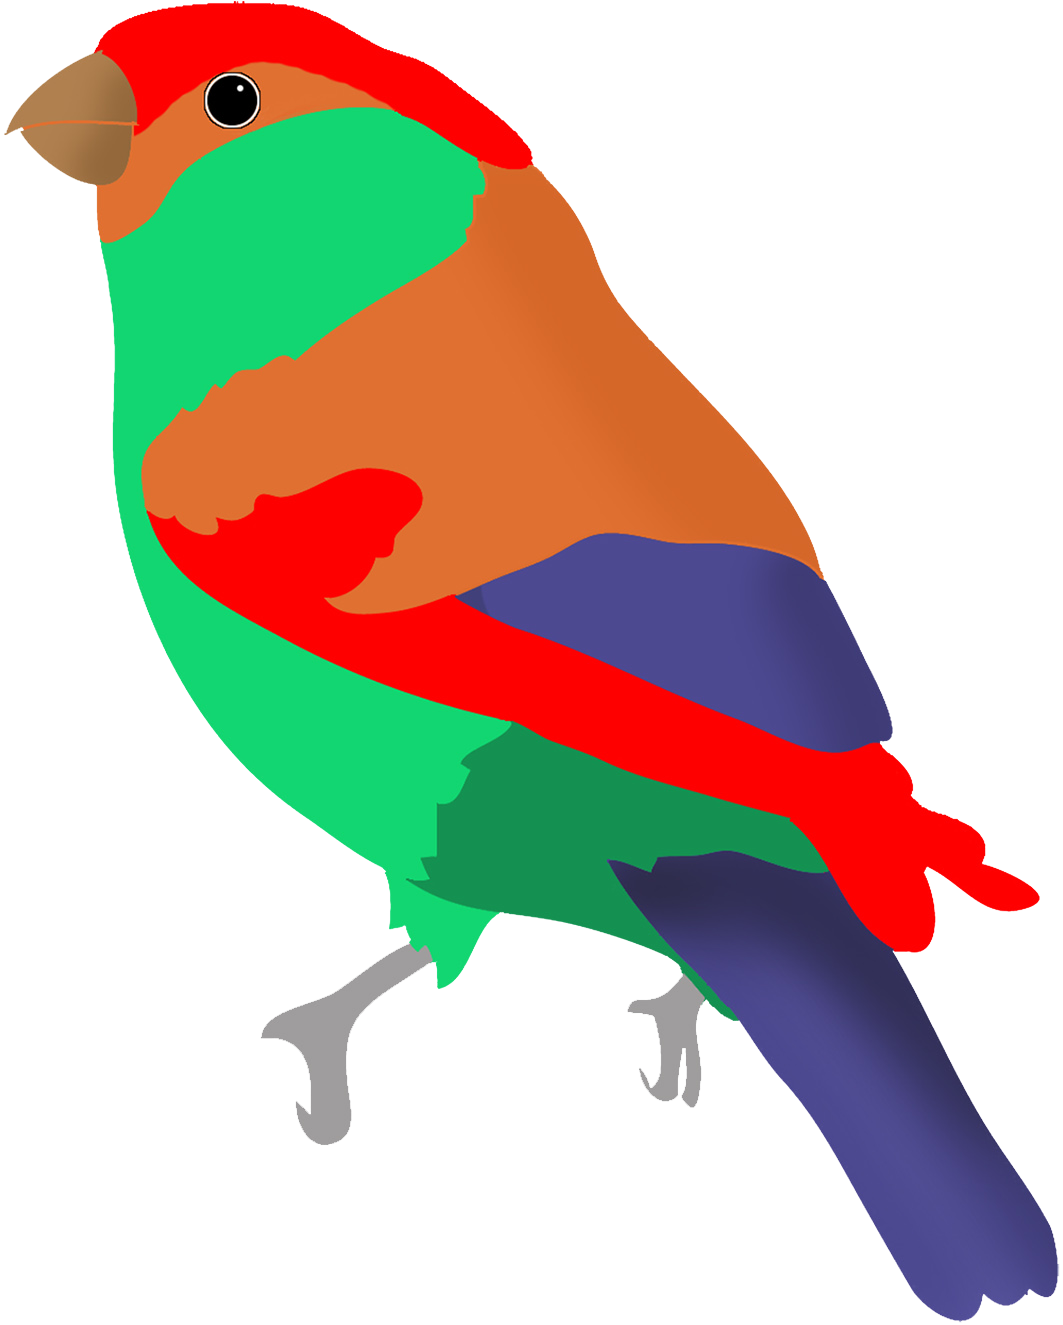 colorful bird in fantasy colors